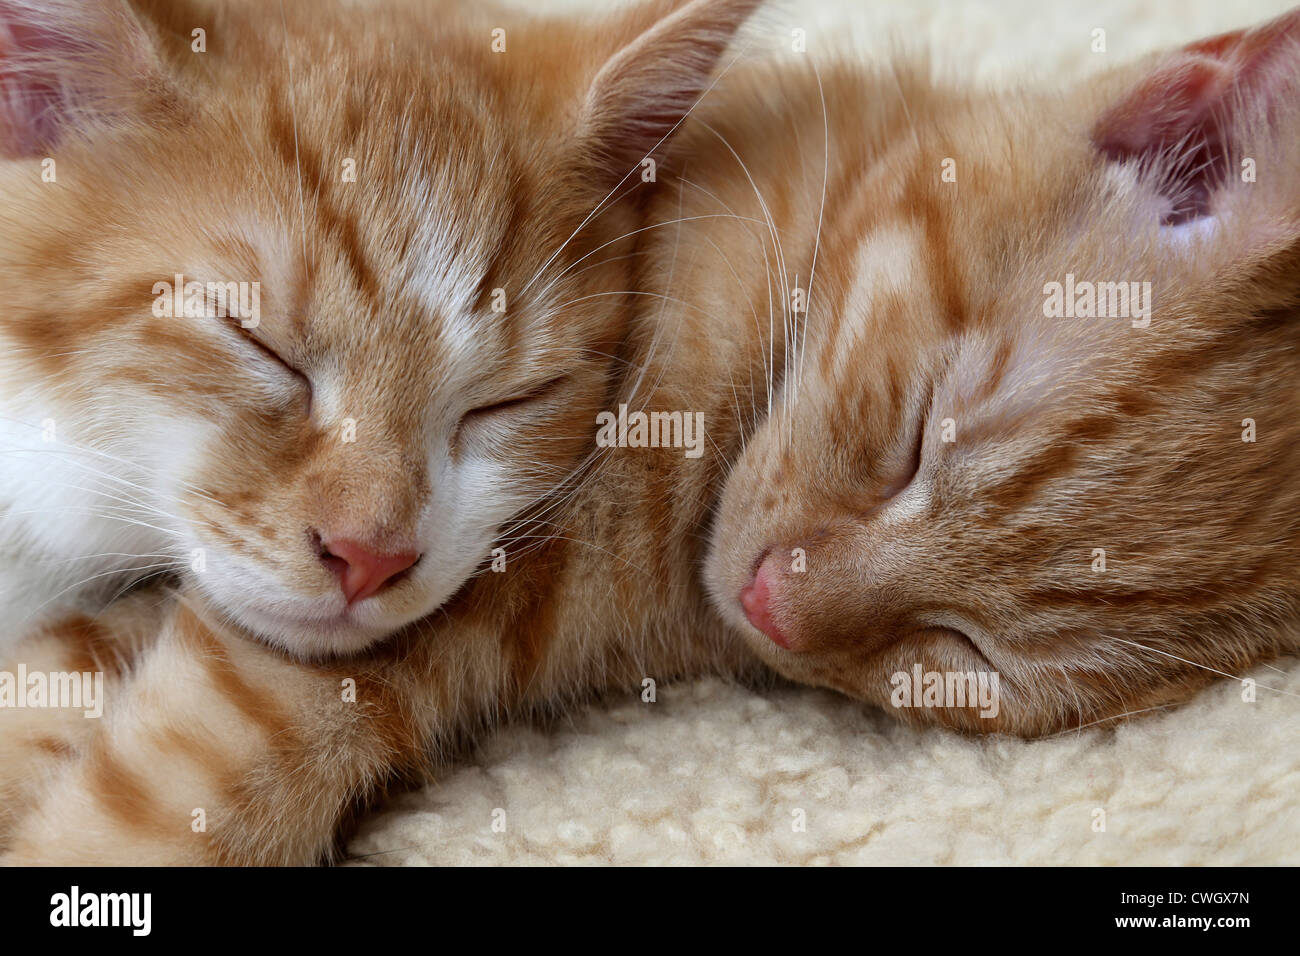 Two Ginger Kittens Sleeping Together - Stock Image